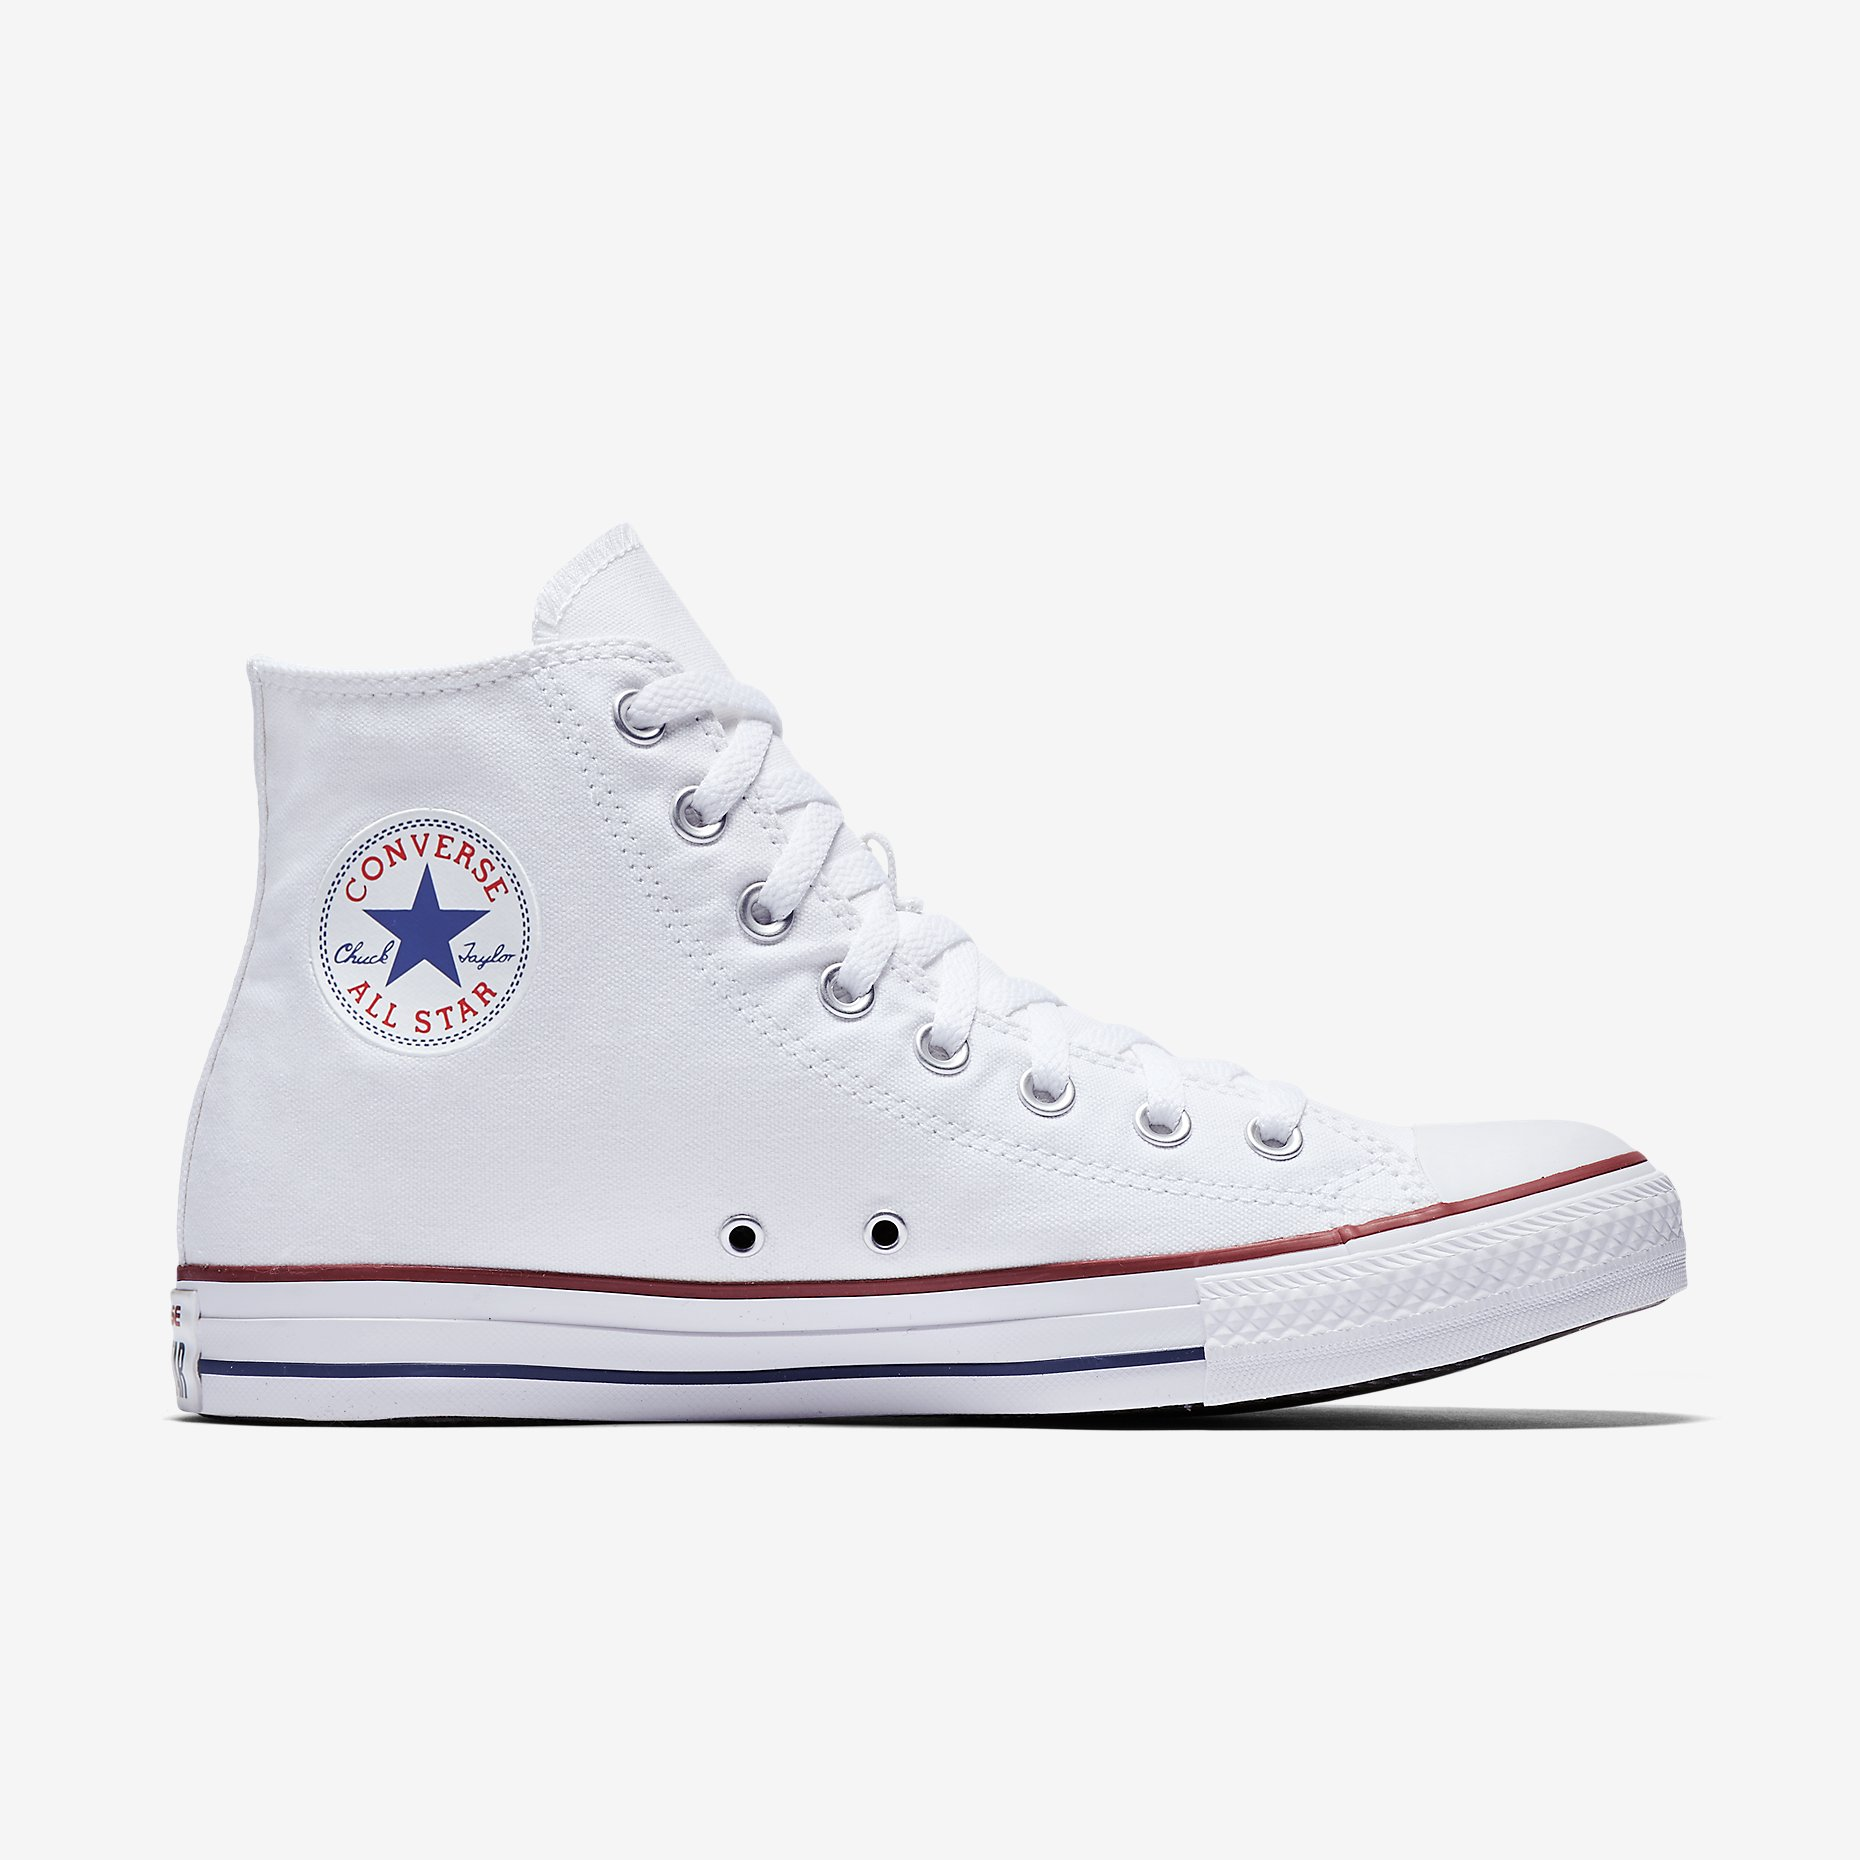 All Star Converse Chuck Taylor All Star High Top White Spinners